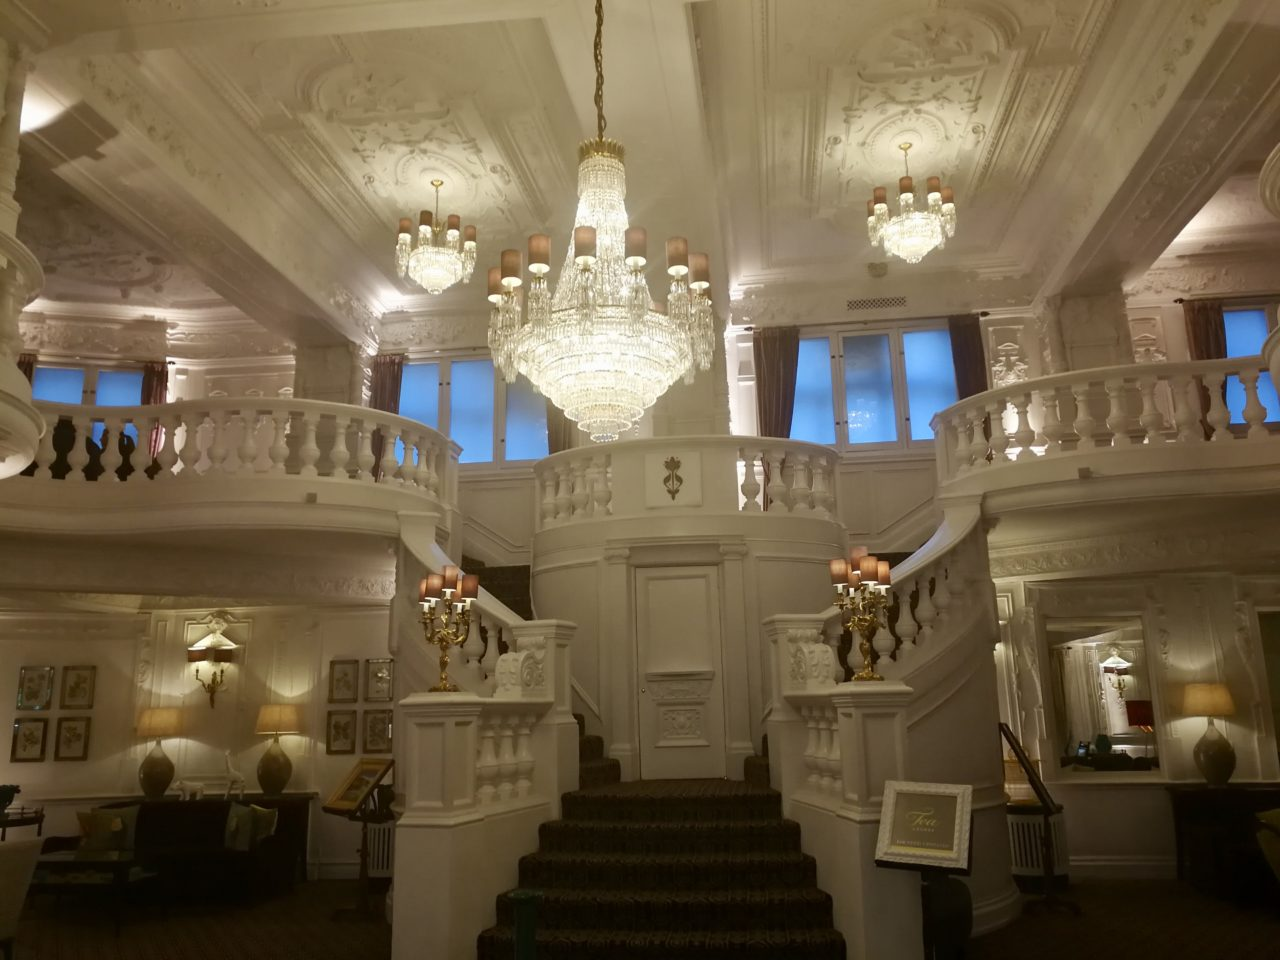 The Ornate Lobby at St Ermin's